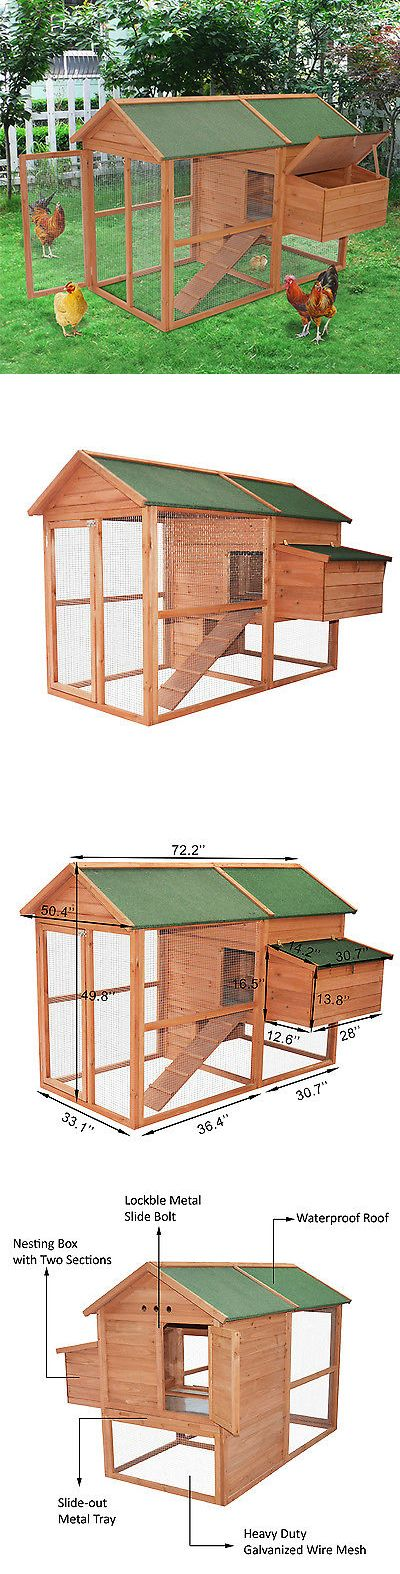 Backyard Poultry Supplies 177801: Large Wooden House Chicken Coop Rabbit Hutch Backyard Poultry Habitat Hen W/Run BUY IT NOW ONLY: $279.99